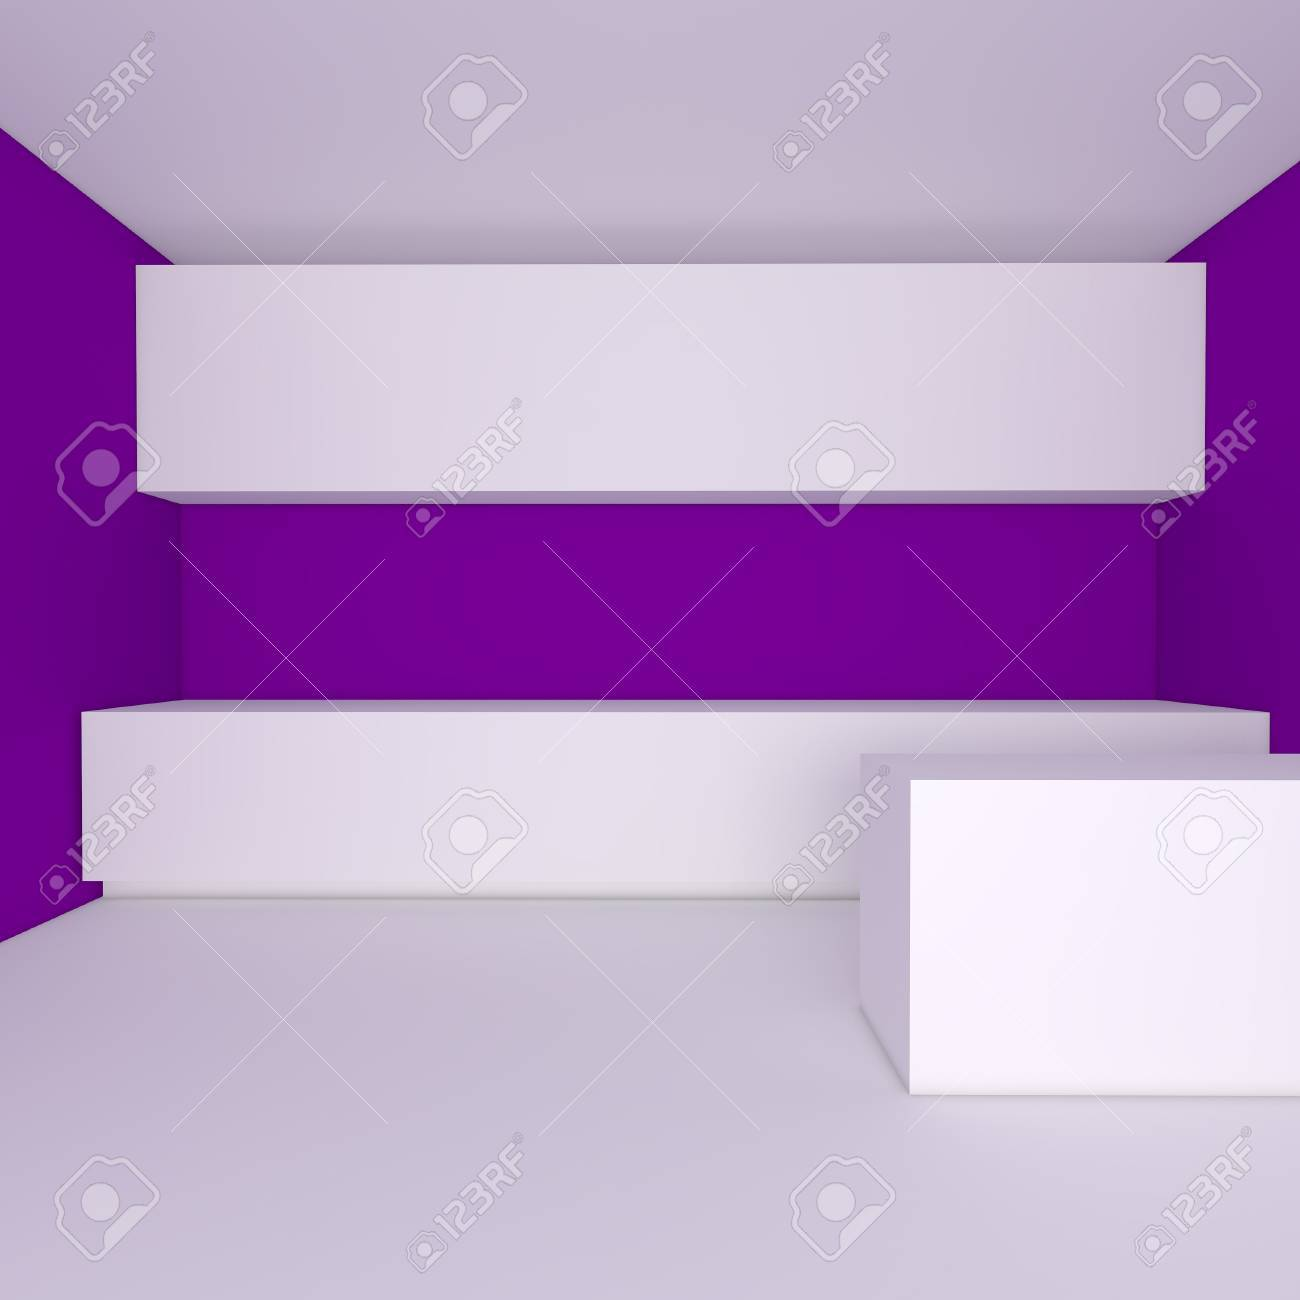 Empty Kitchen Wall Empty Interior Design For Kitchen Room With Purple Wall Stock